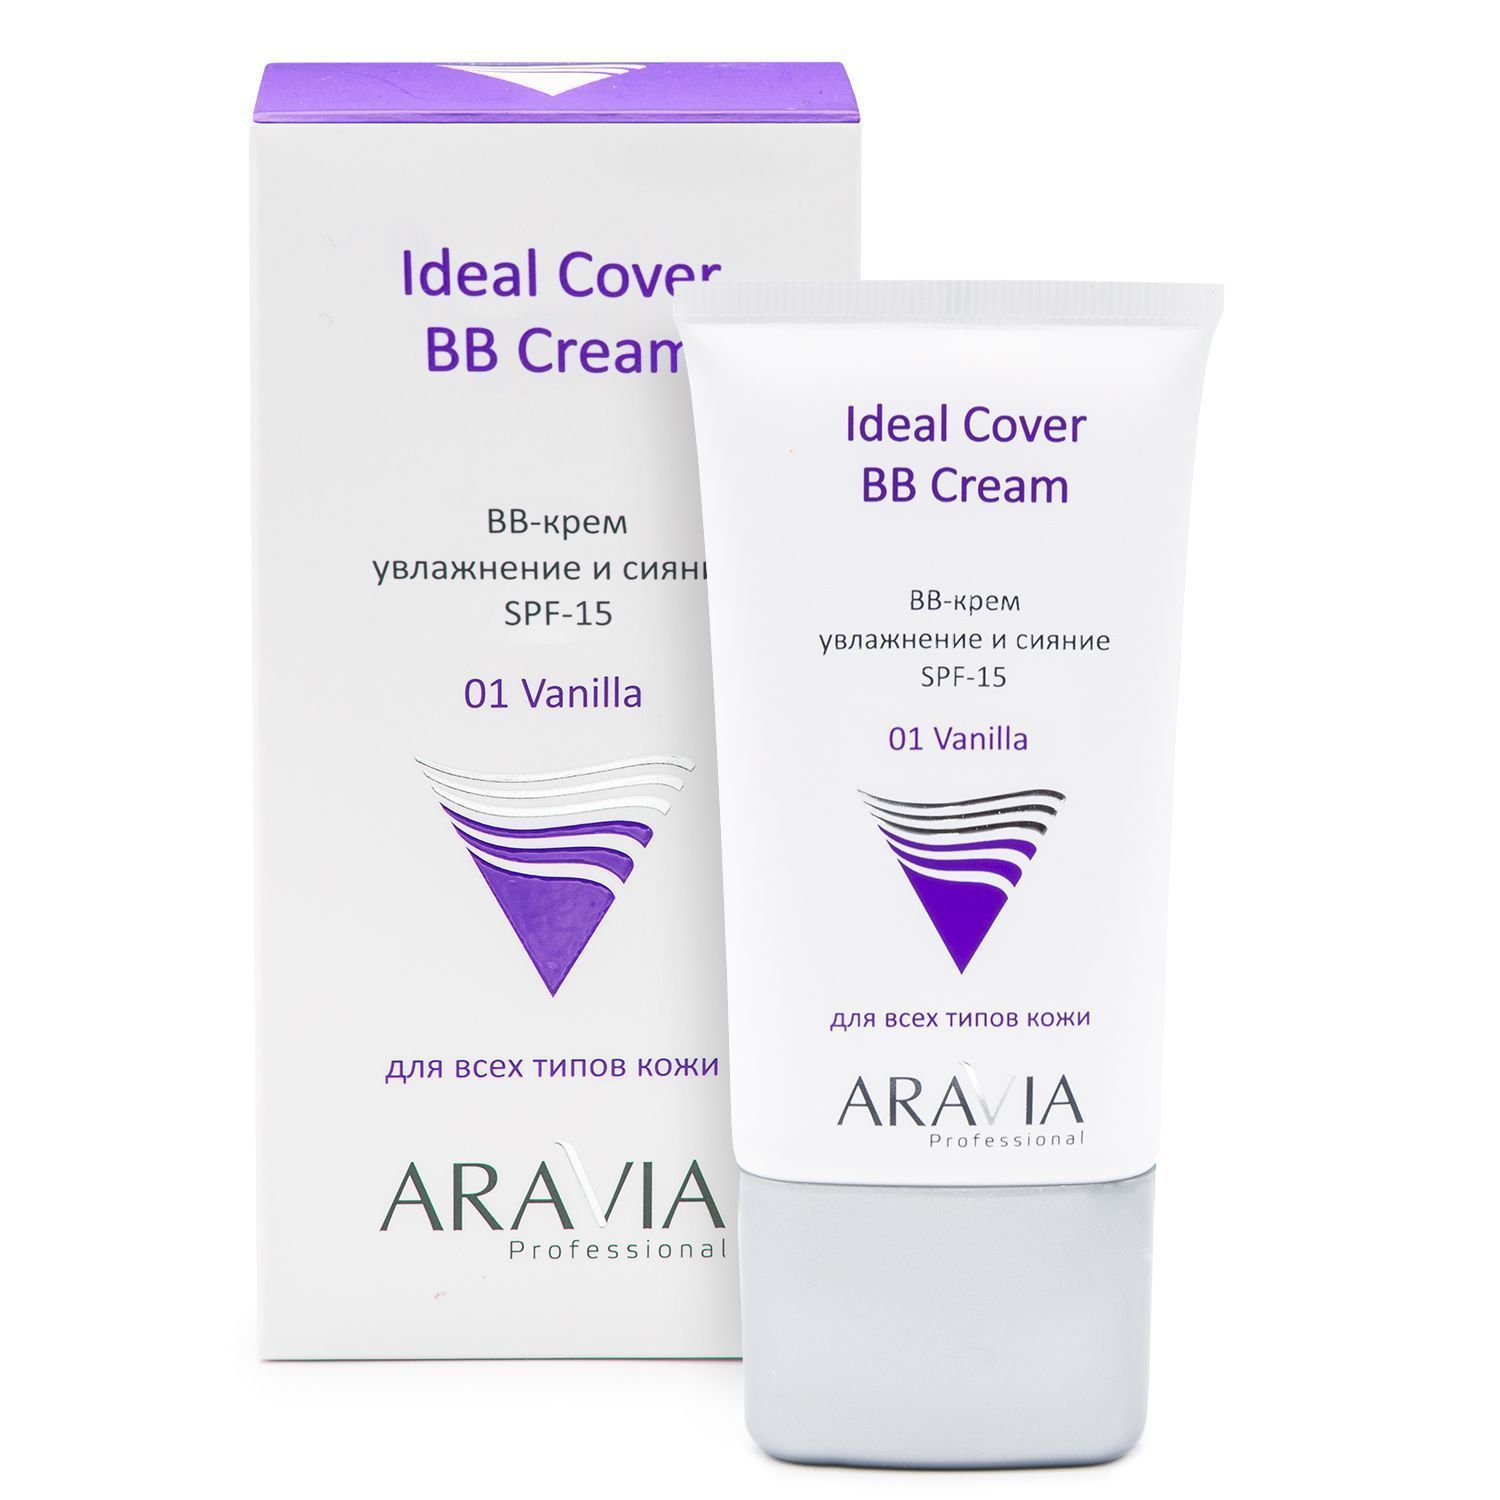 ARAVIA Professional Multifunctional CC-Cream CC-крем защтный SPF-20, тон 02 150 мл